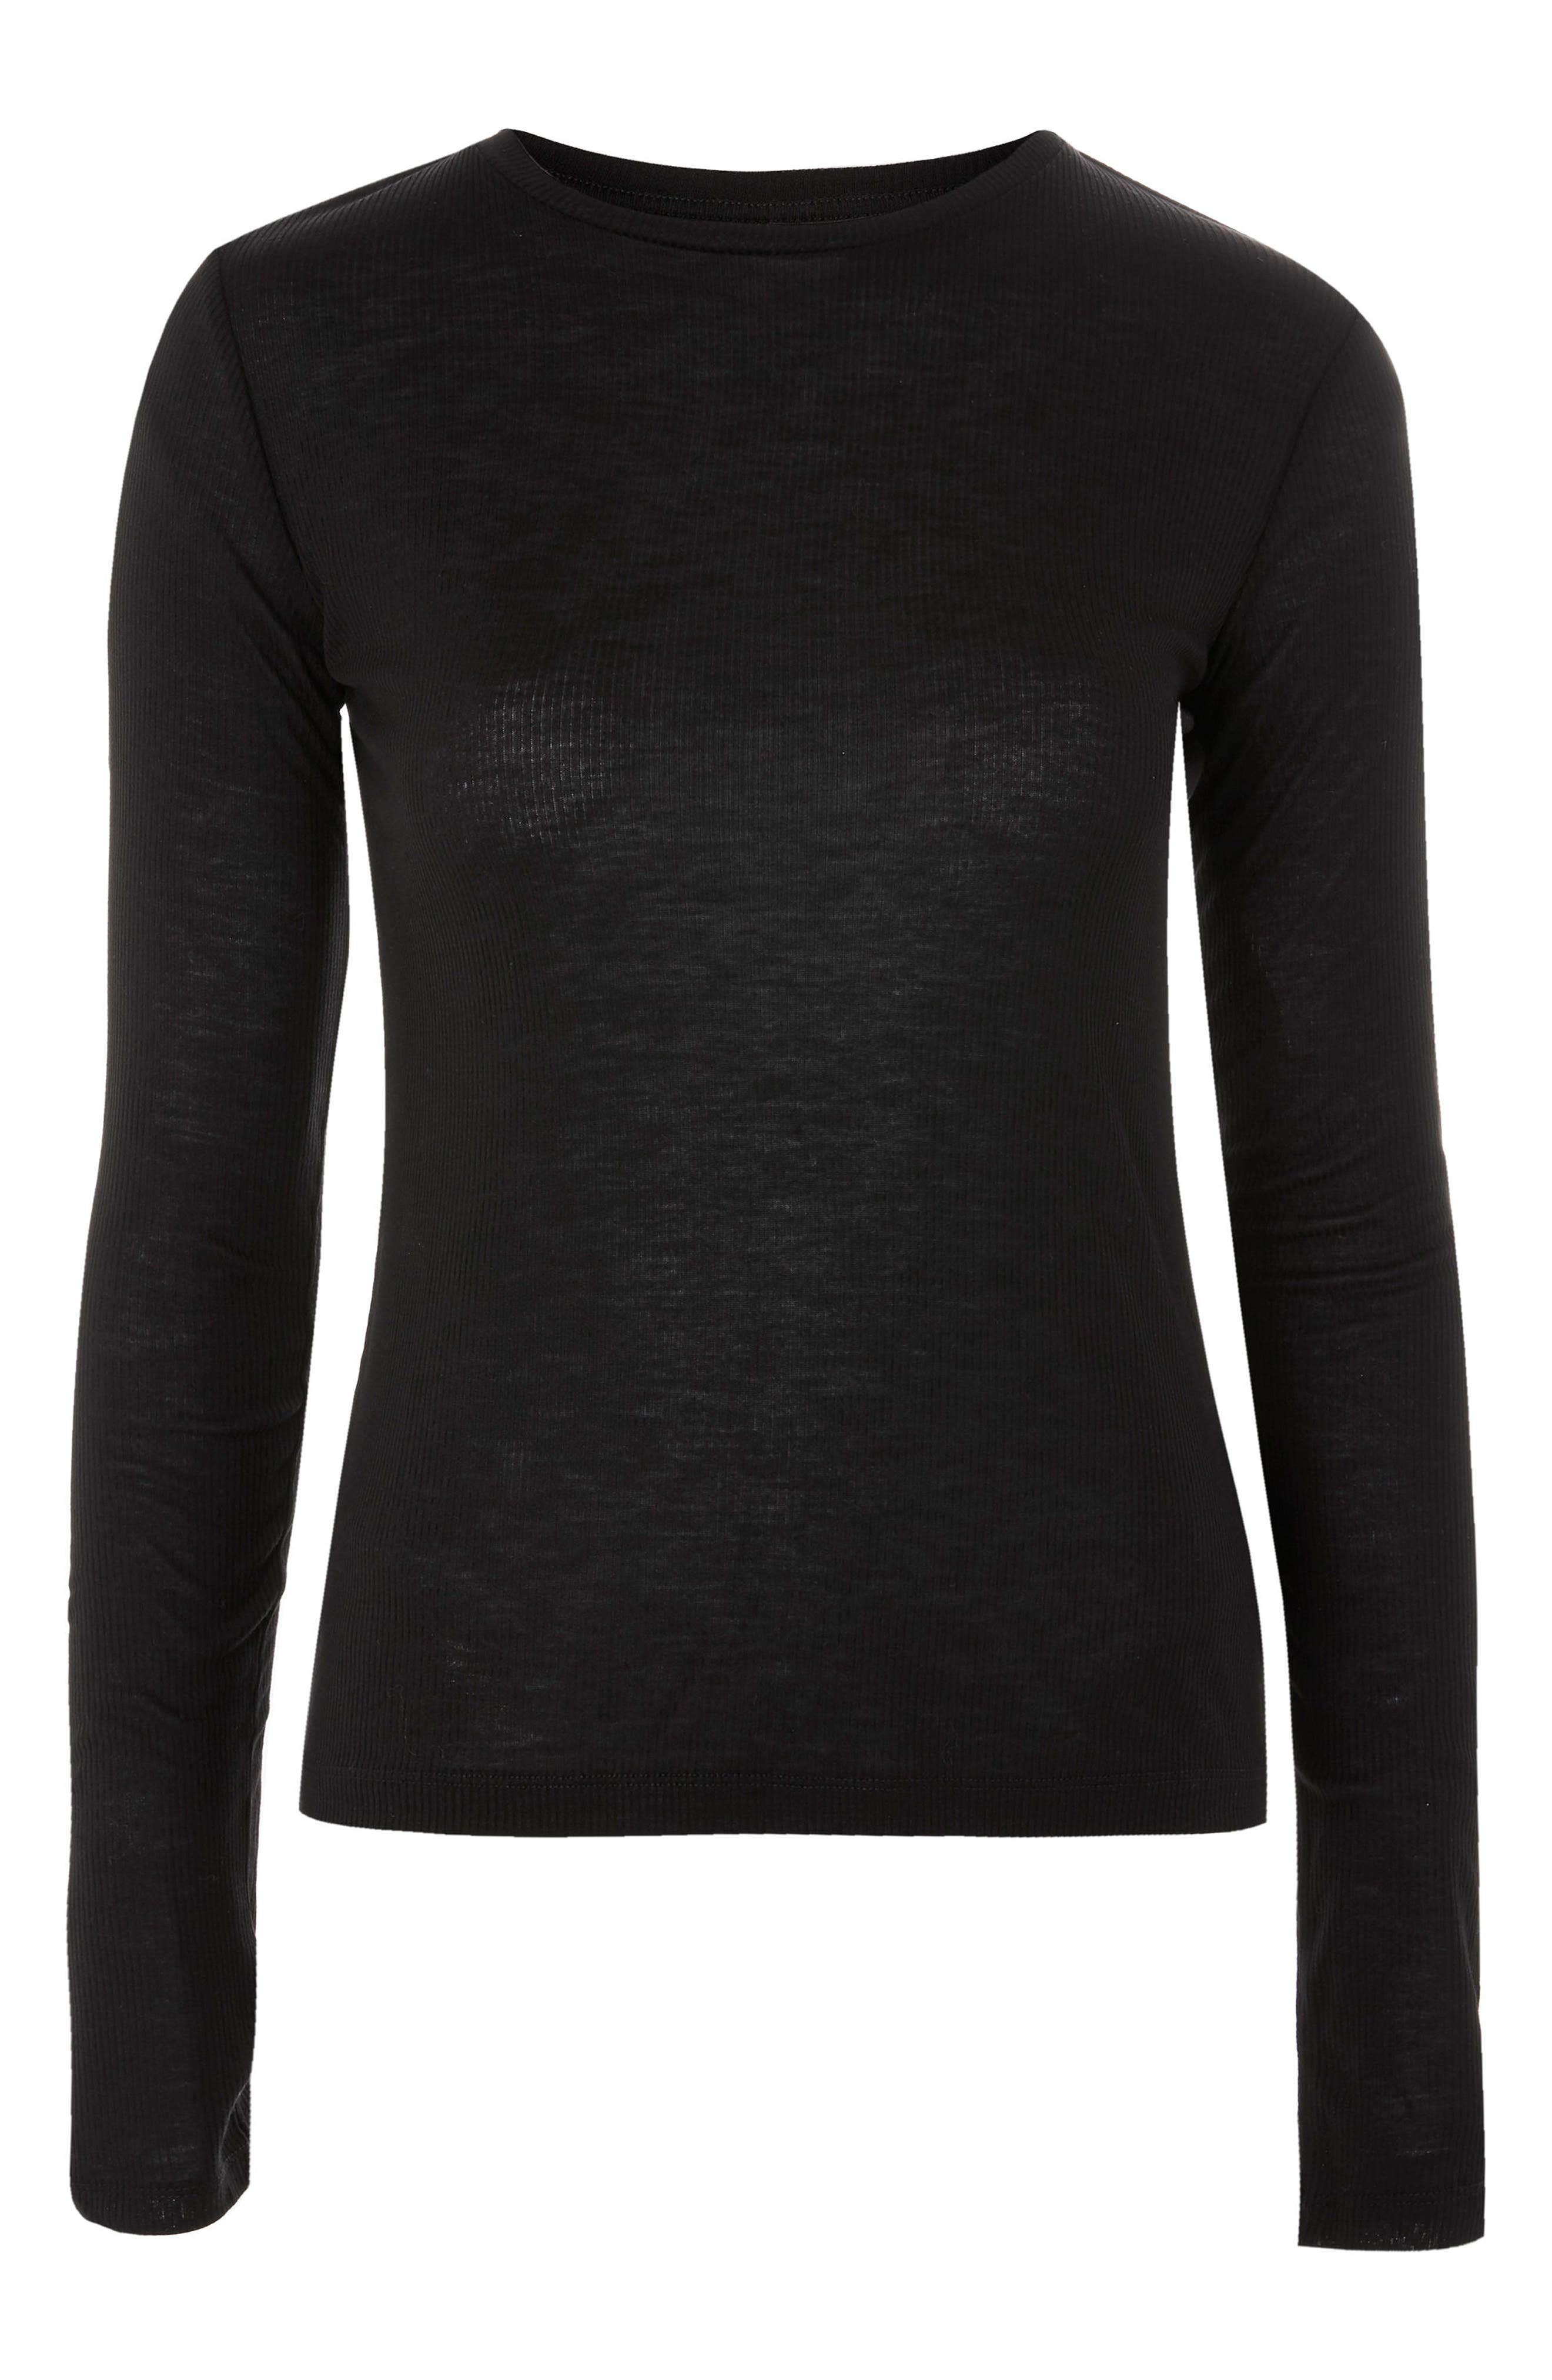 Topshop Boutique Ribbed Long Sleeve Tee